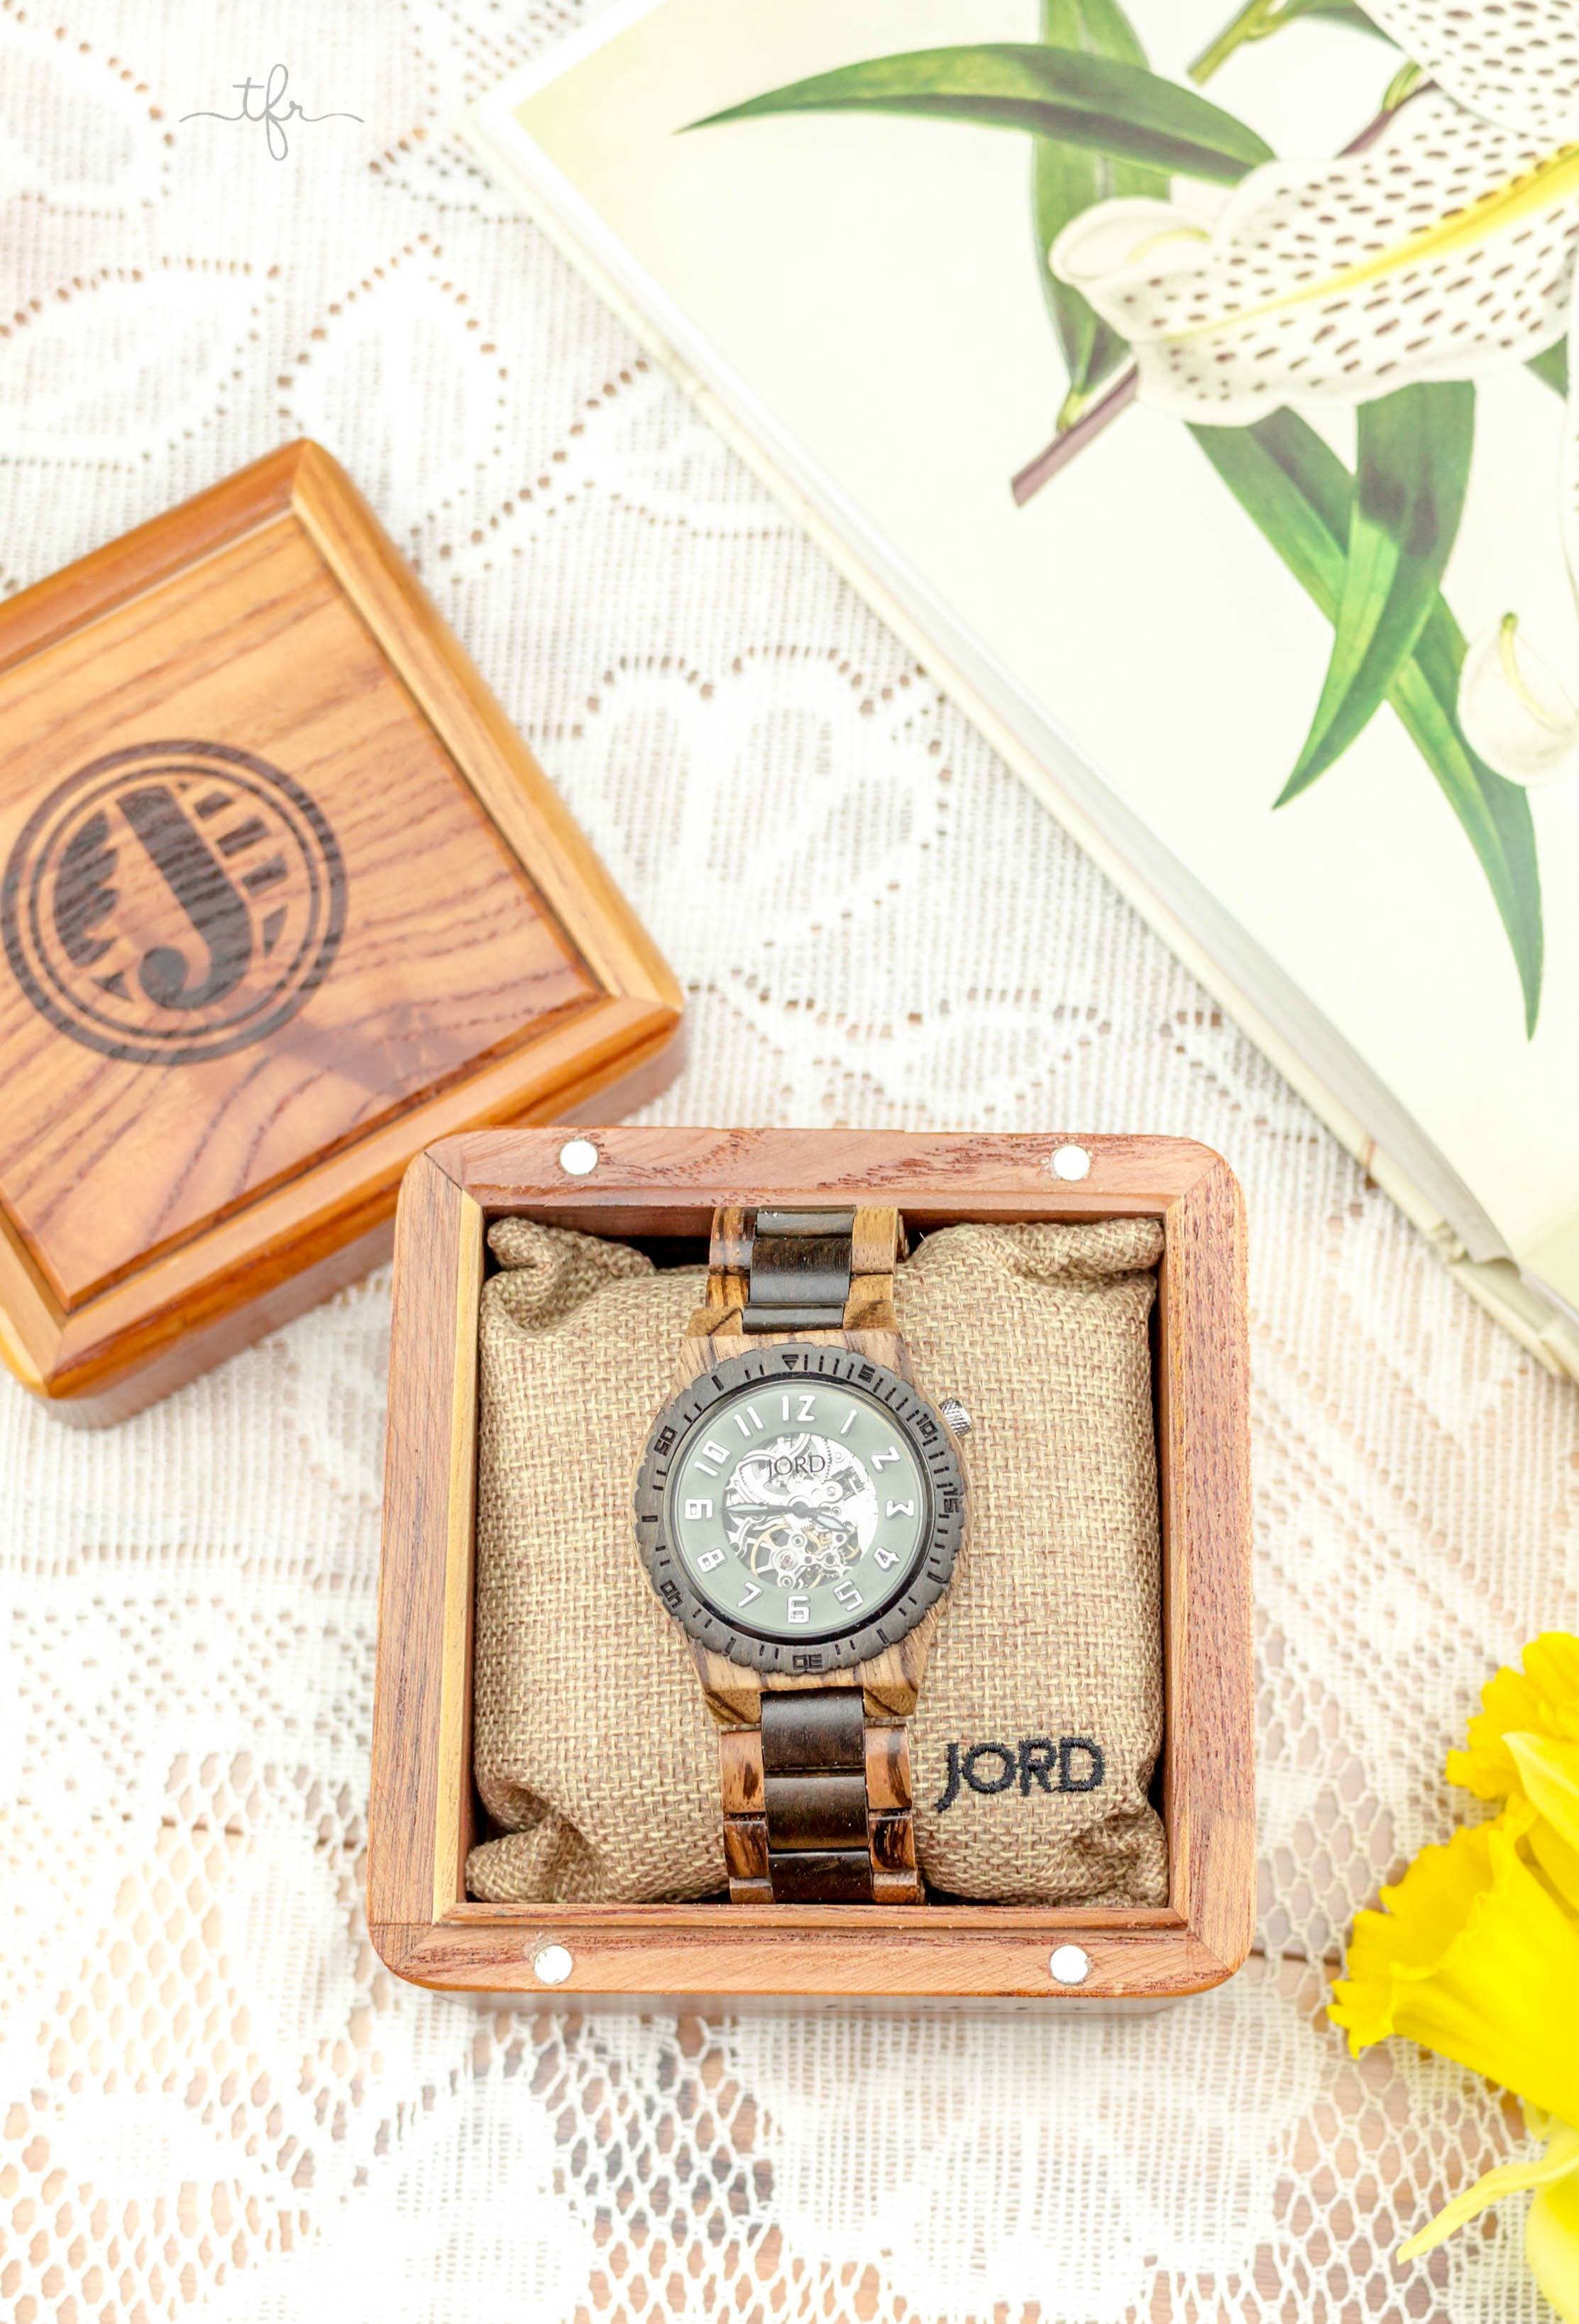 It's Finally Time For Spring | JORD watch giveaway | angiethefreckledrose.com